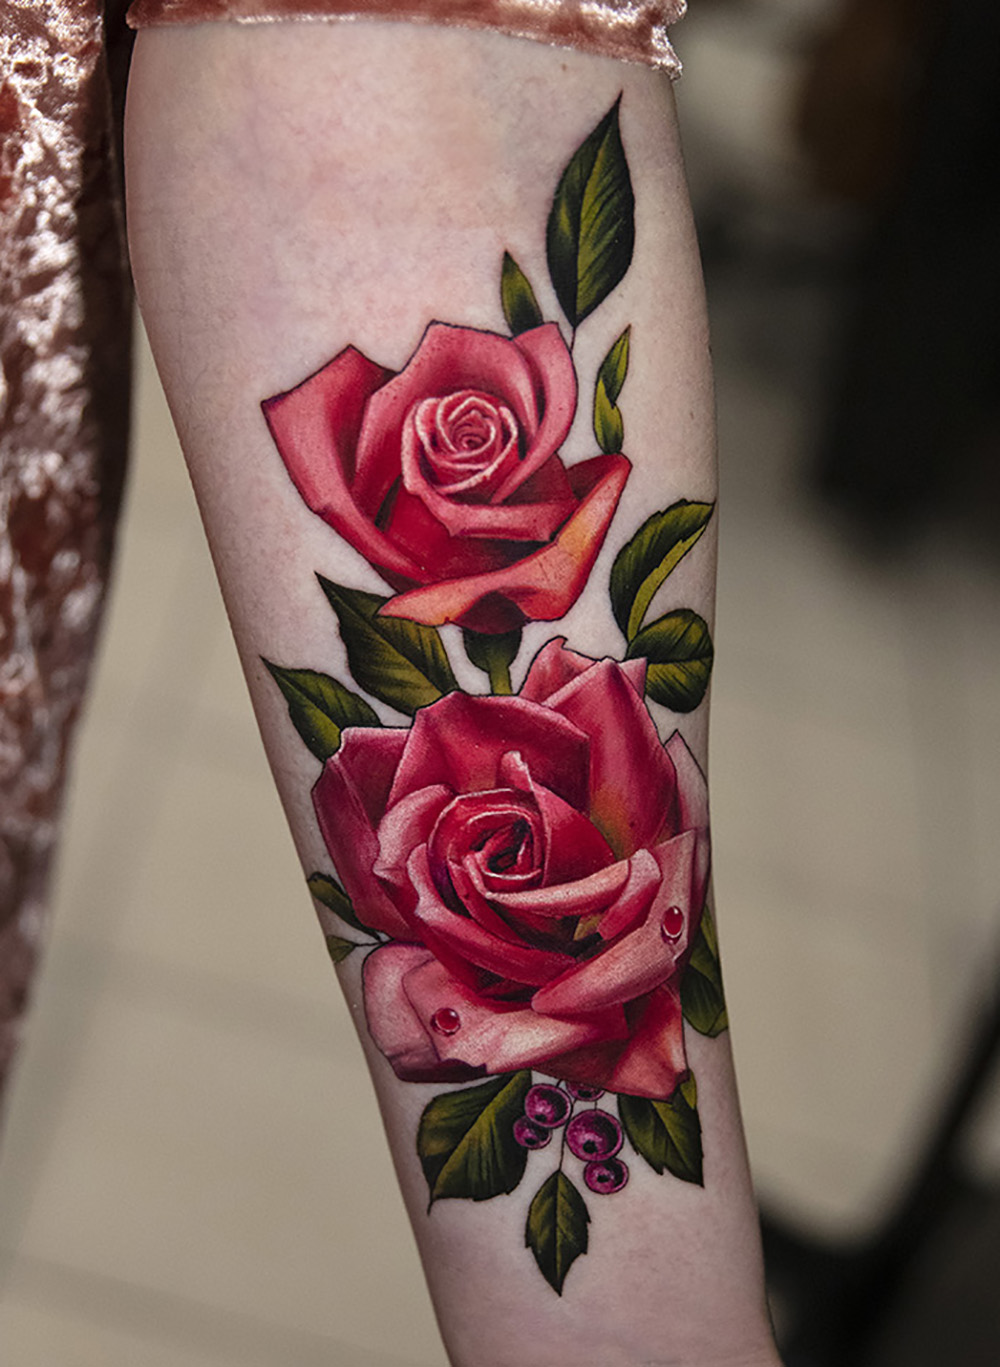 two roses tattoo by Mikhail Andersson